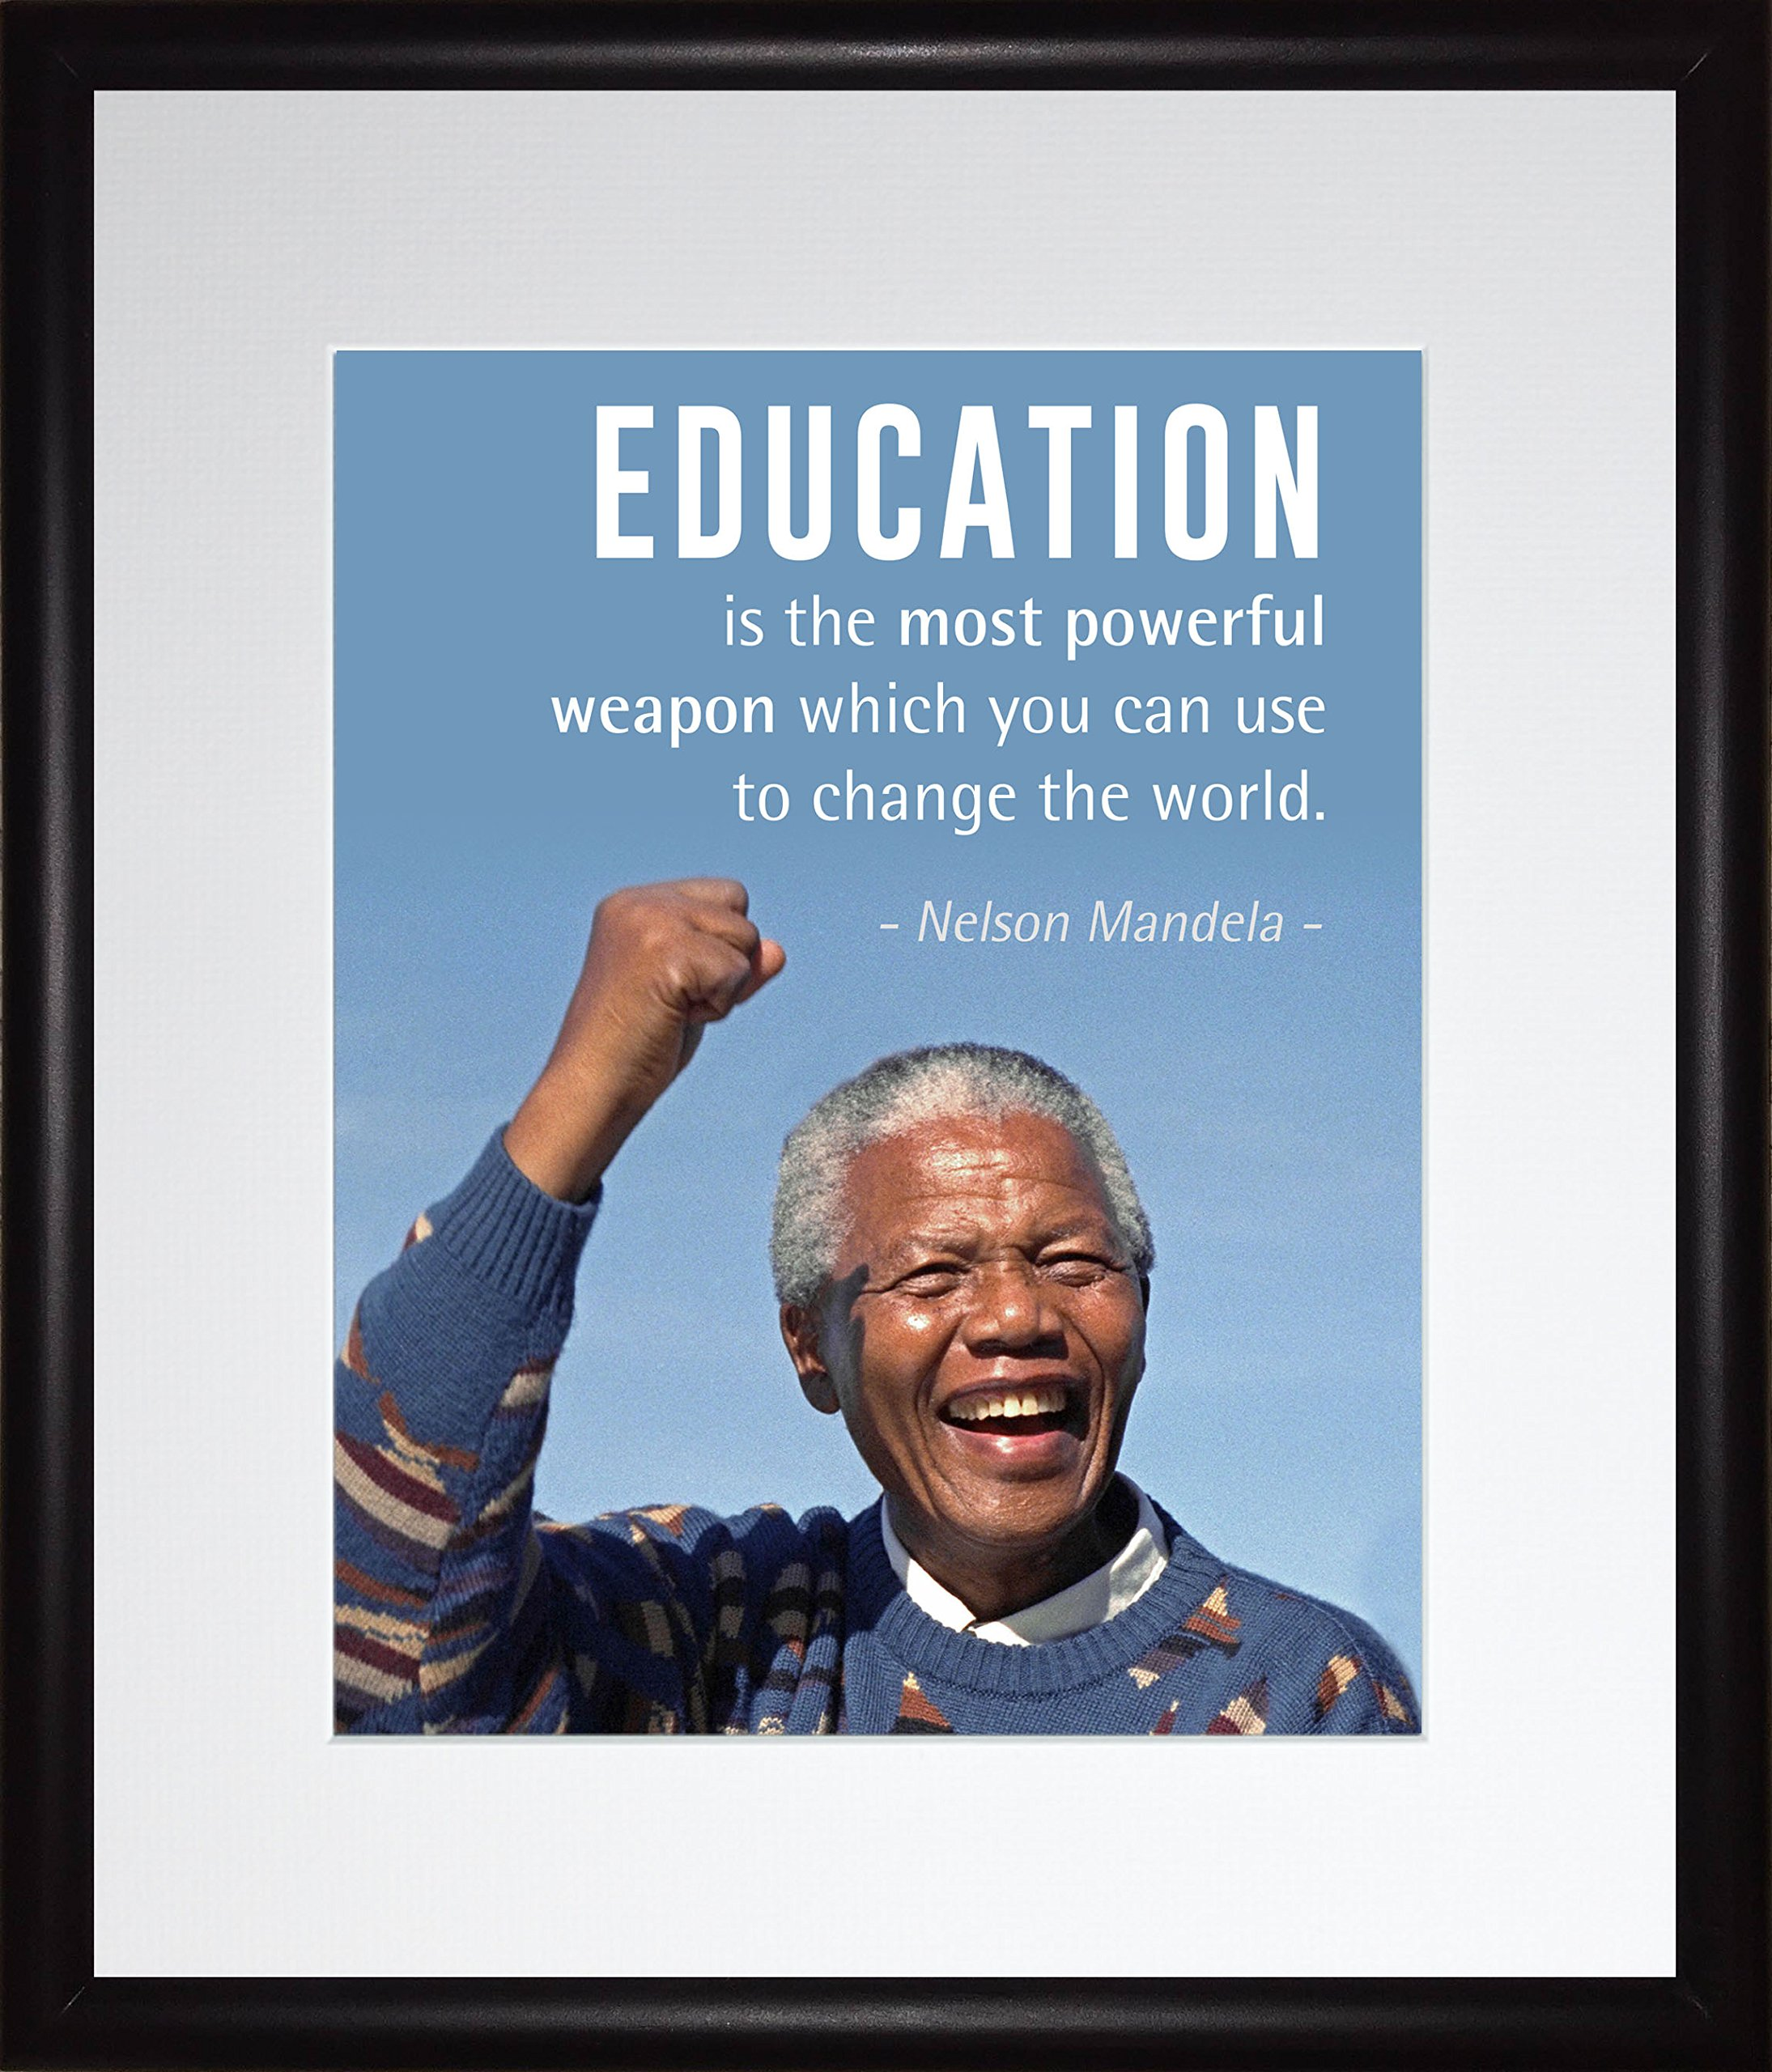 Nelson Mandela Quote ''Education is the most powerful weapon'' | Motivational Poster, Print, Picture or Framed Wall Art Decor - Inspirational Quotes Collection - Christmas Gifts (11x13 Framed)